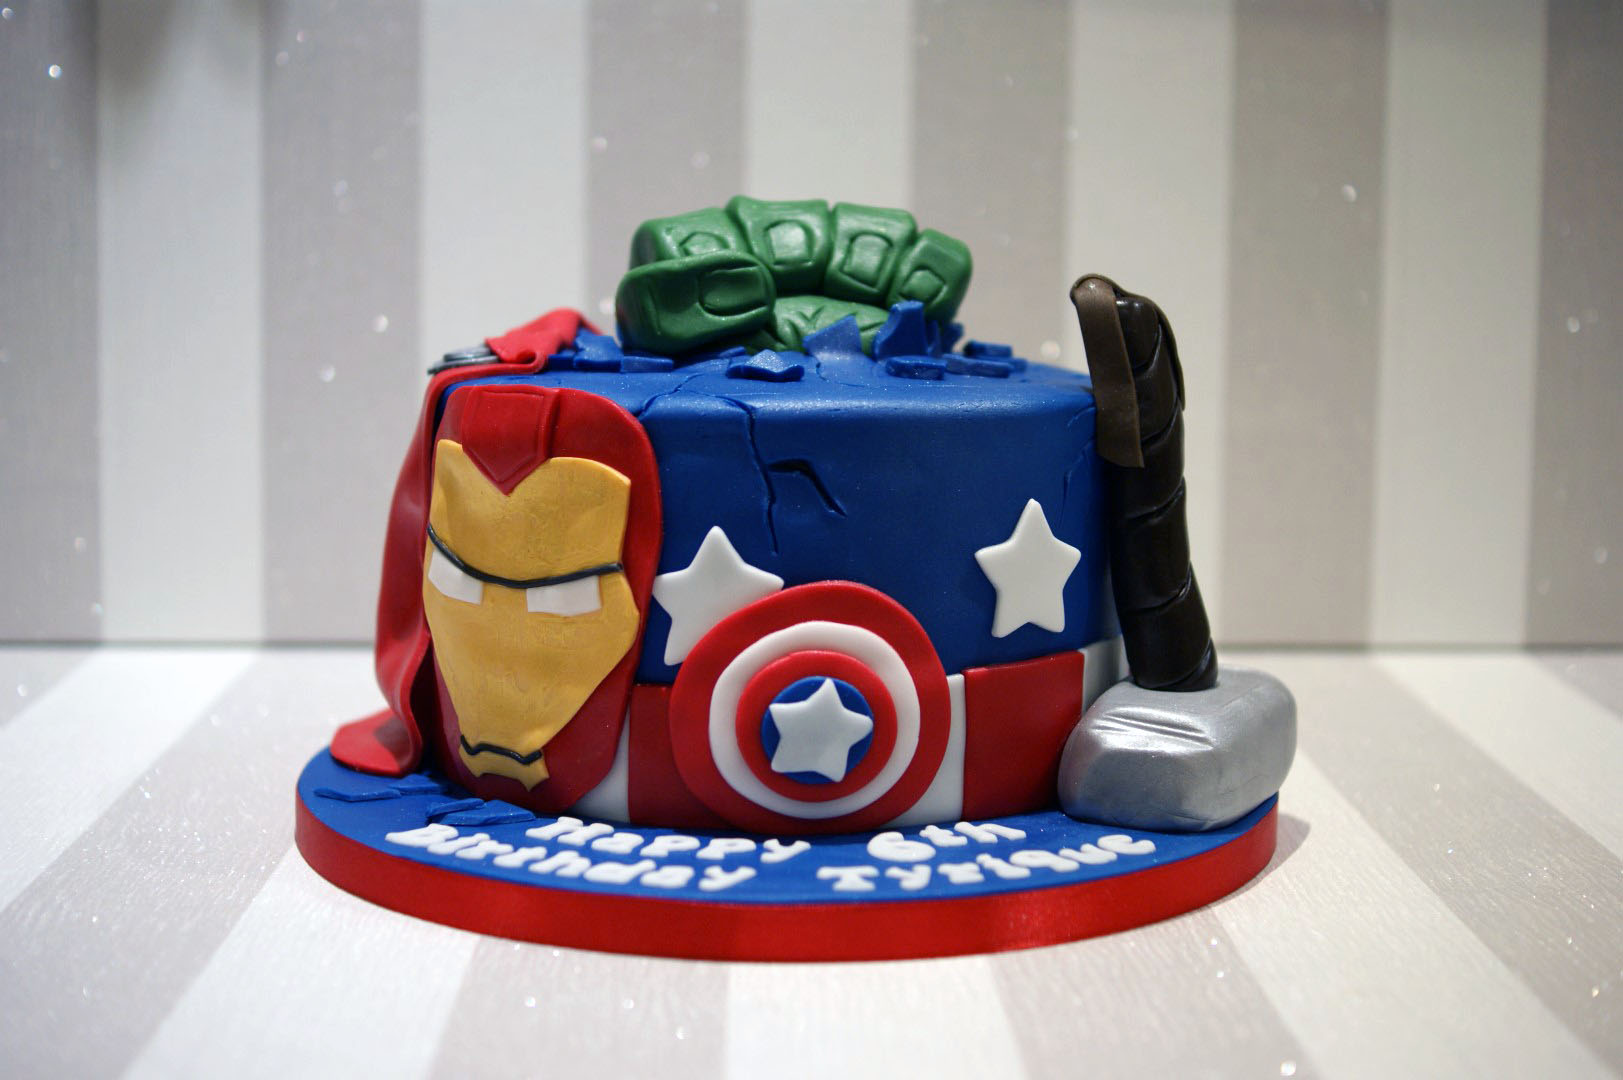 birthday cakes avengers birthday cake posted 2 years ago by louise ...